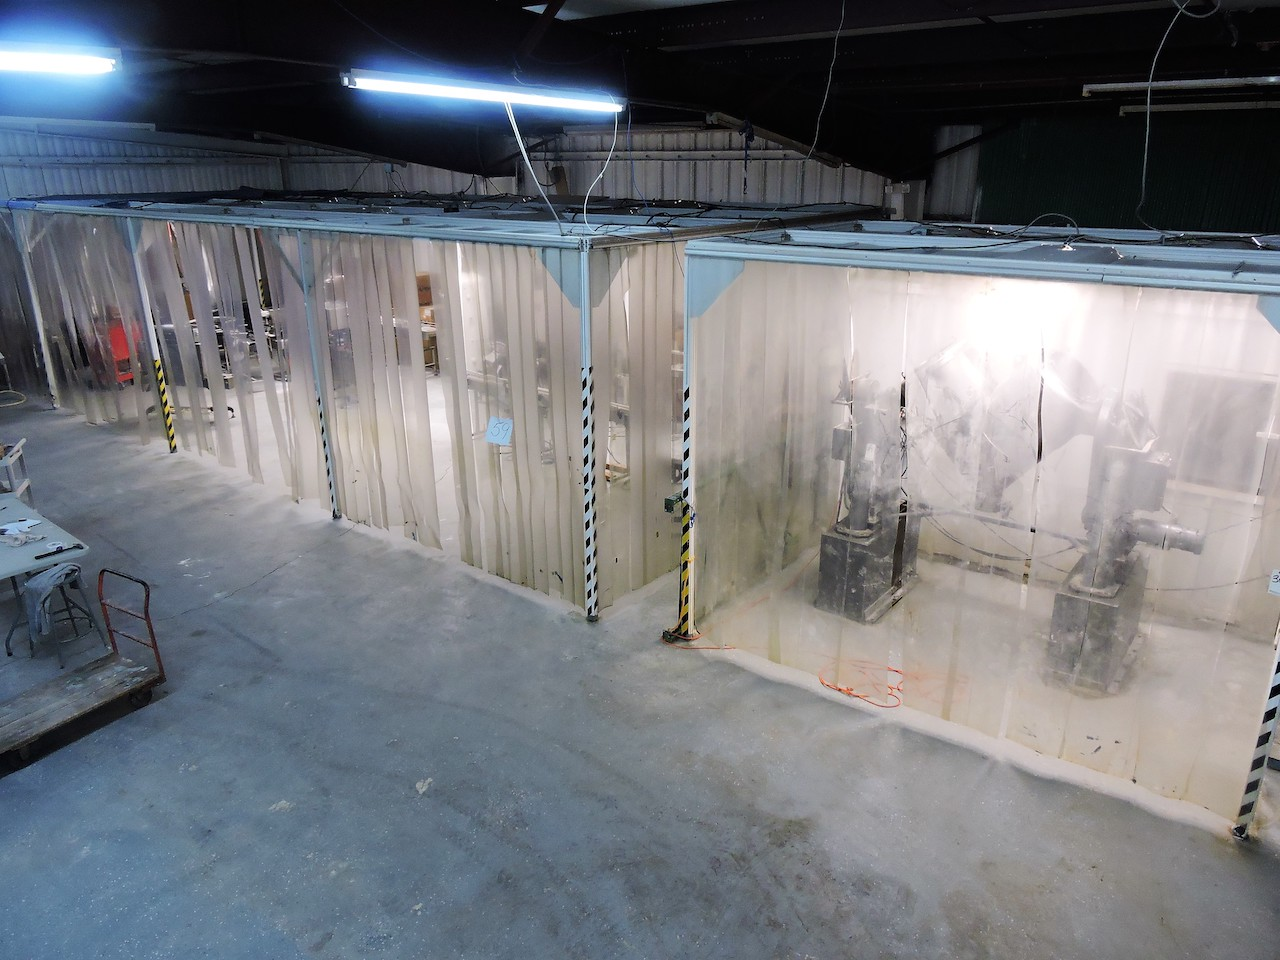 Lot 59 - AIR PRODUCTS SOFTWALL CLEAN ROOM 16 FT X 48 FT WITH 40 FT OF LIGHTING AND CEILING